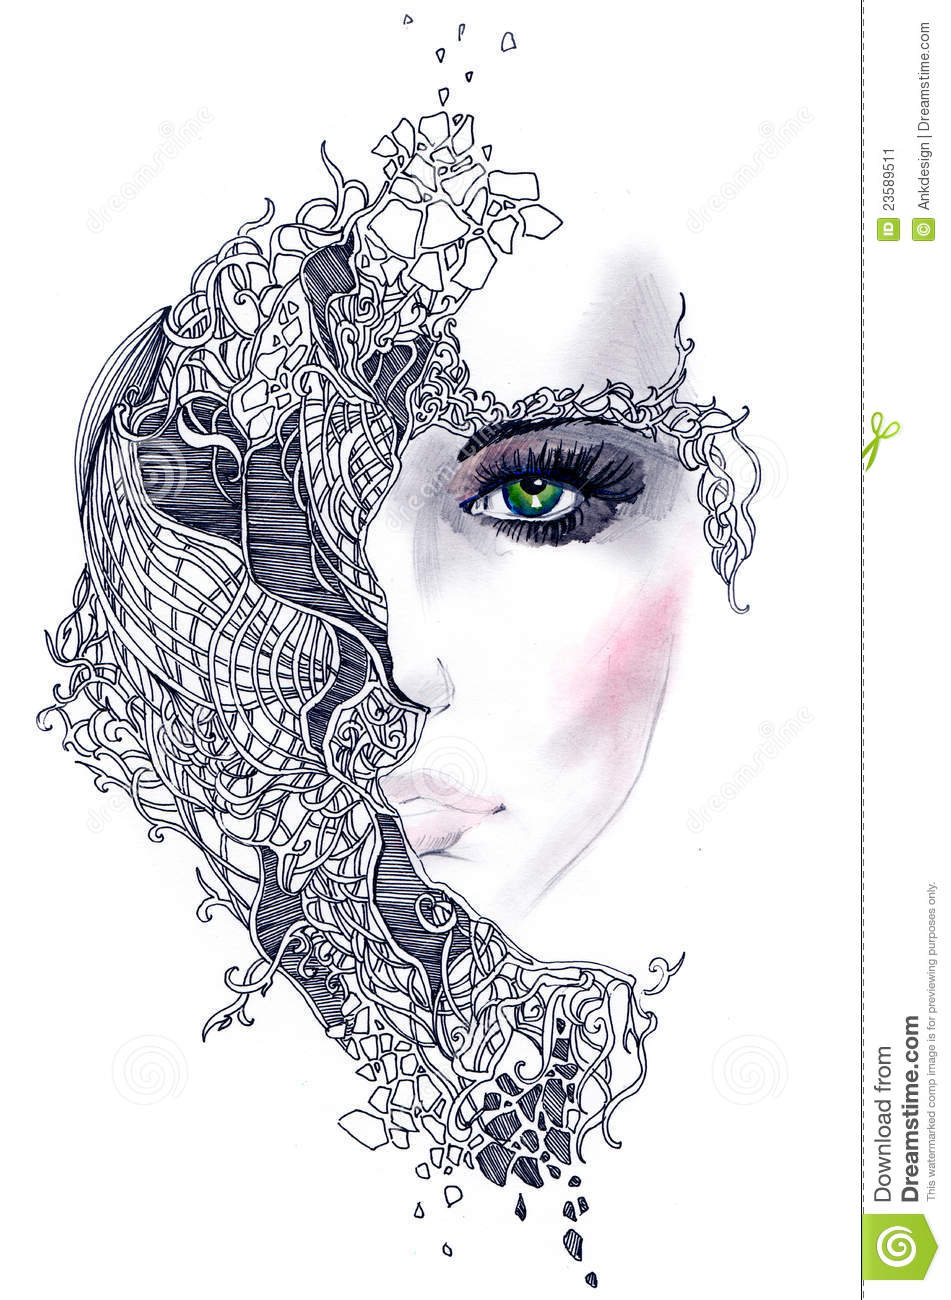 Abstract Woman Face Stock Image - Image: 23589511